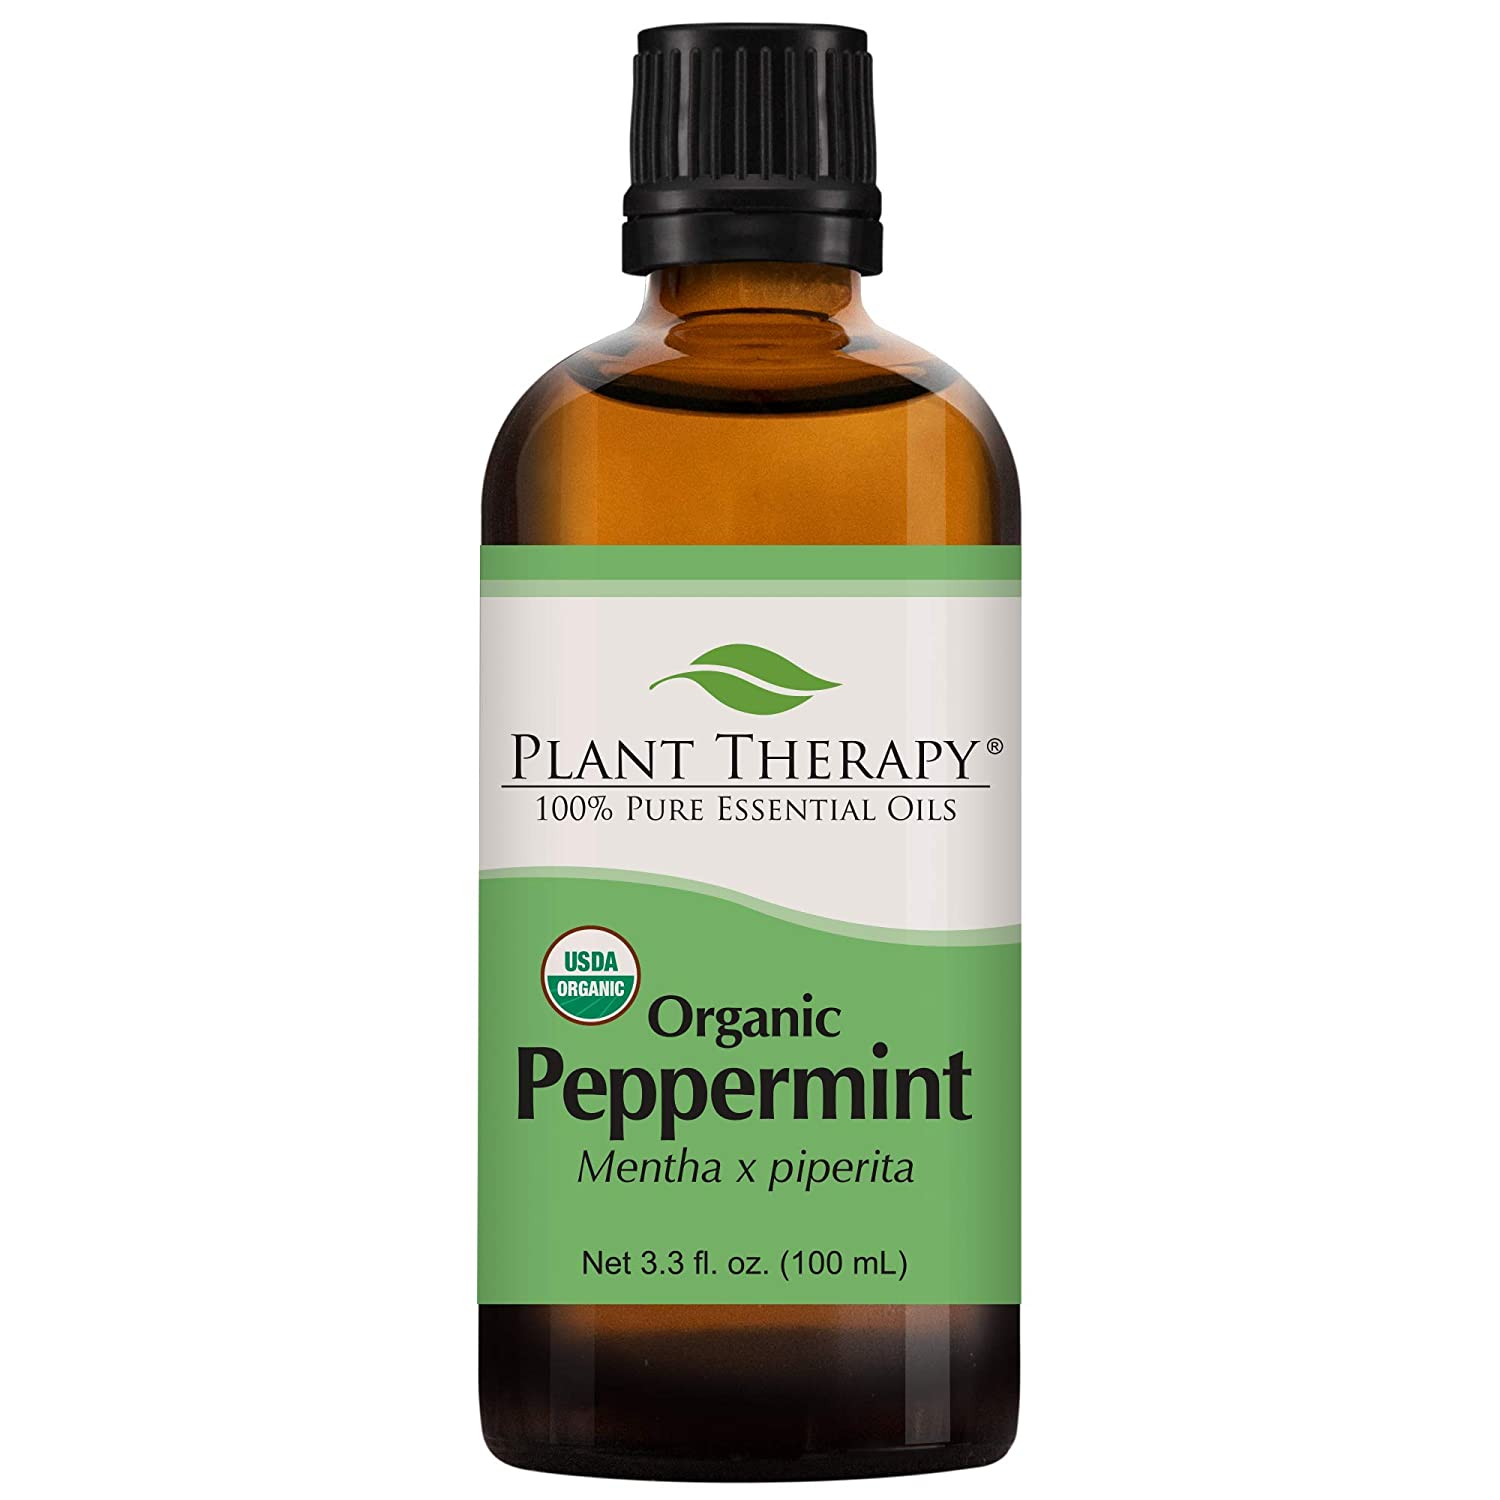 Plant Therapy Organic Peppermint Essential Oil 100% Pure, USDA Certified Organic, Undiluted, Natural Aromatherapy, Therapeutic Grade 100 mL (3.3 oz)